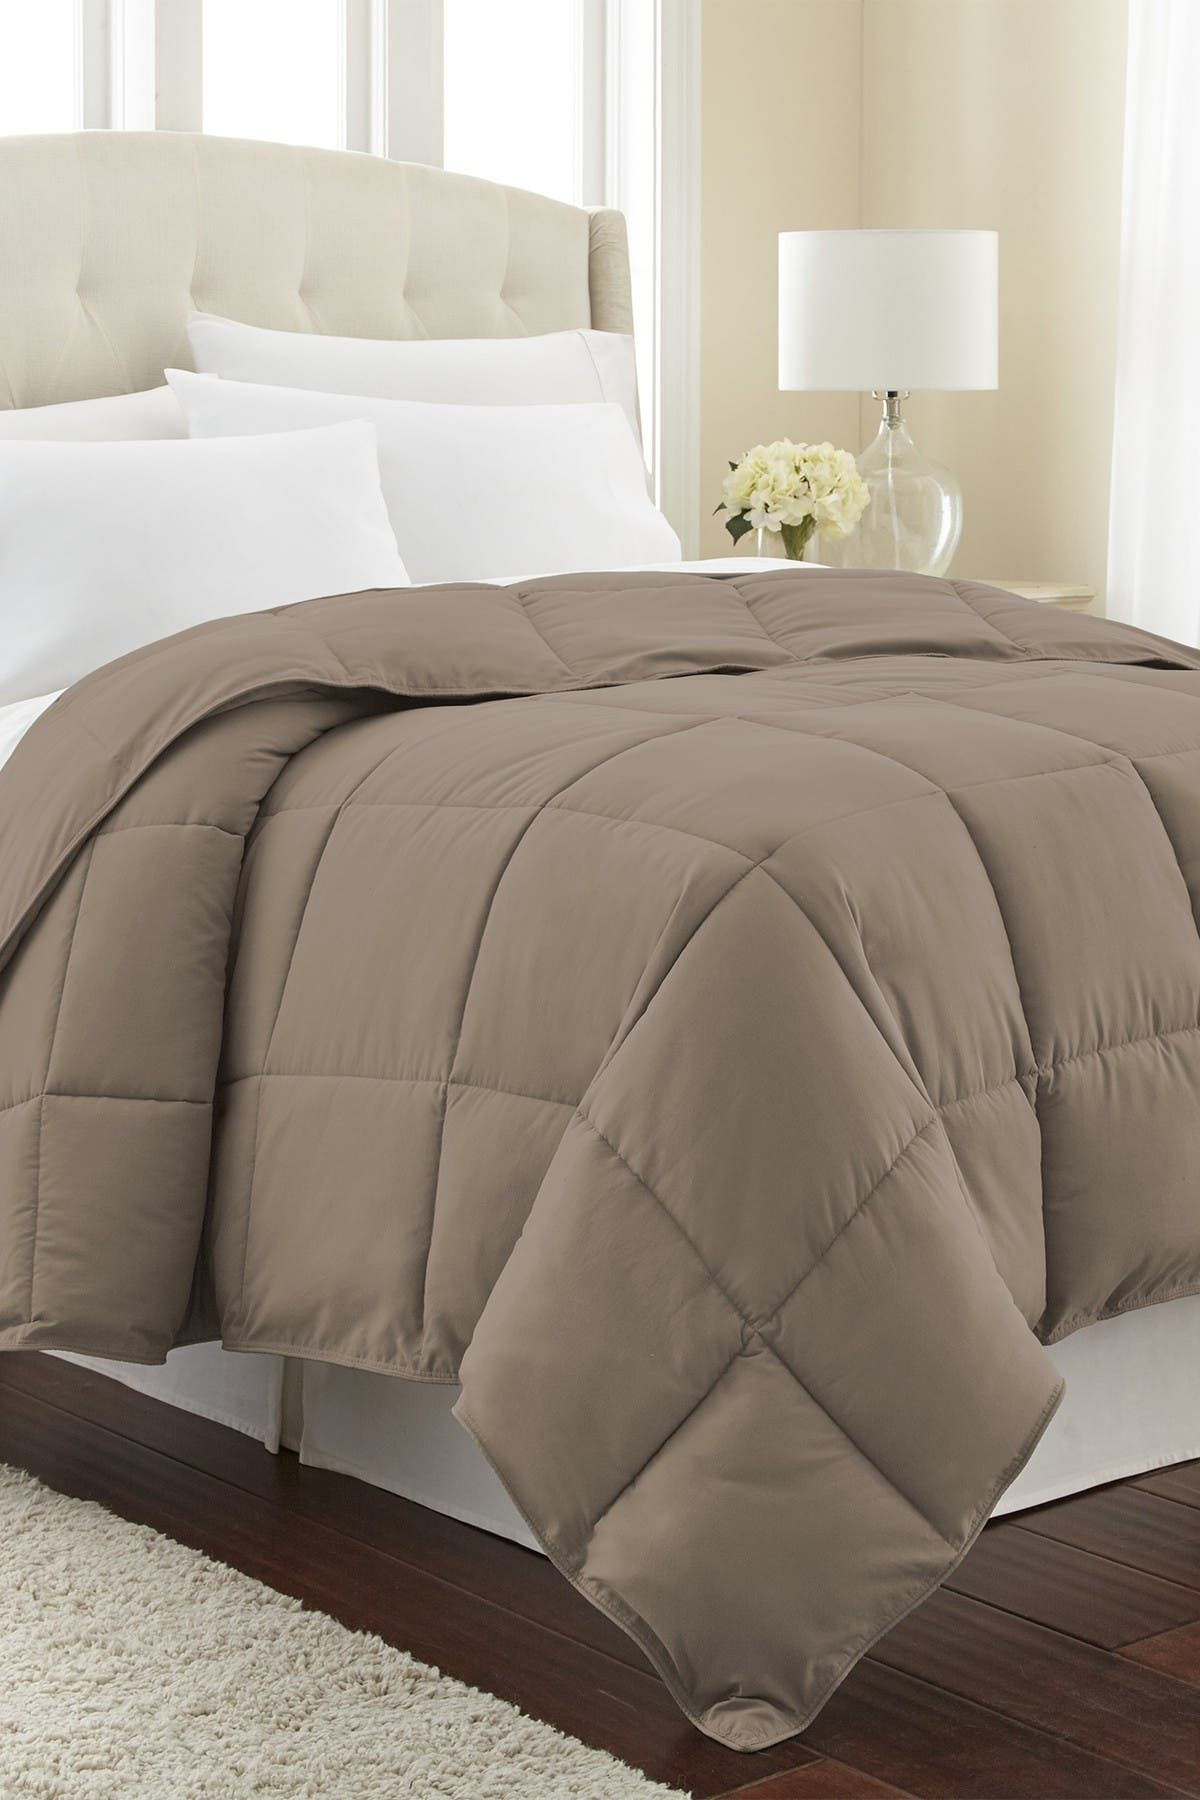 Image of SOUTHSHORE FINE LINENS King/California King Southshore Fine Linens Vilano Springs  Down Alternate Weight Comforter - Dark Taupe